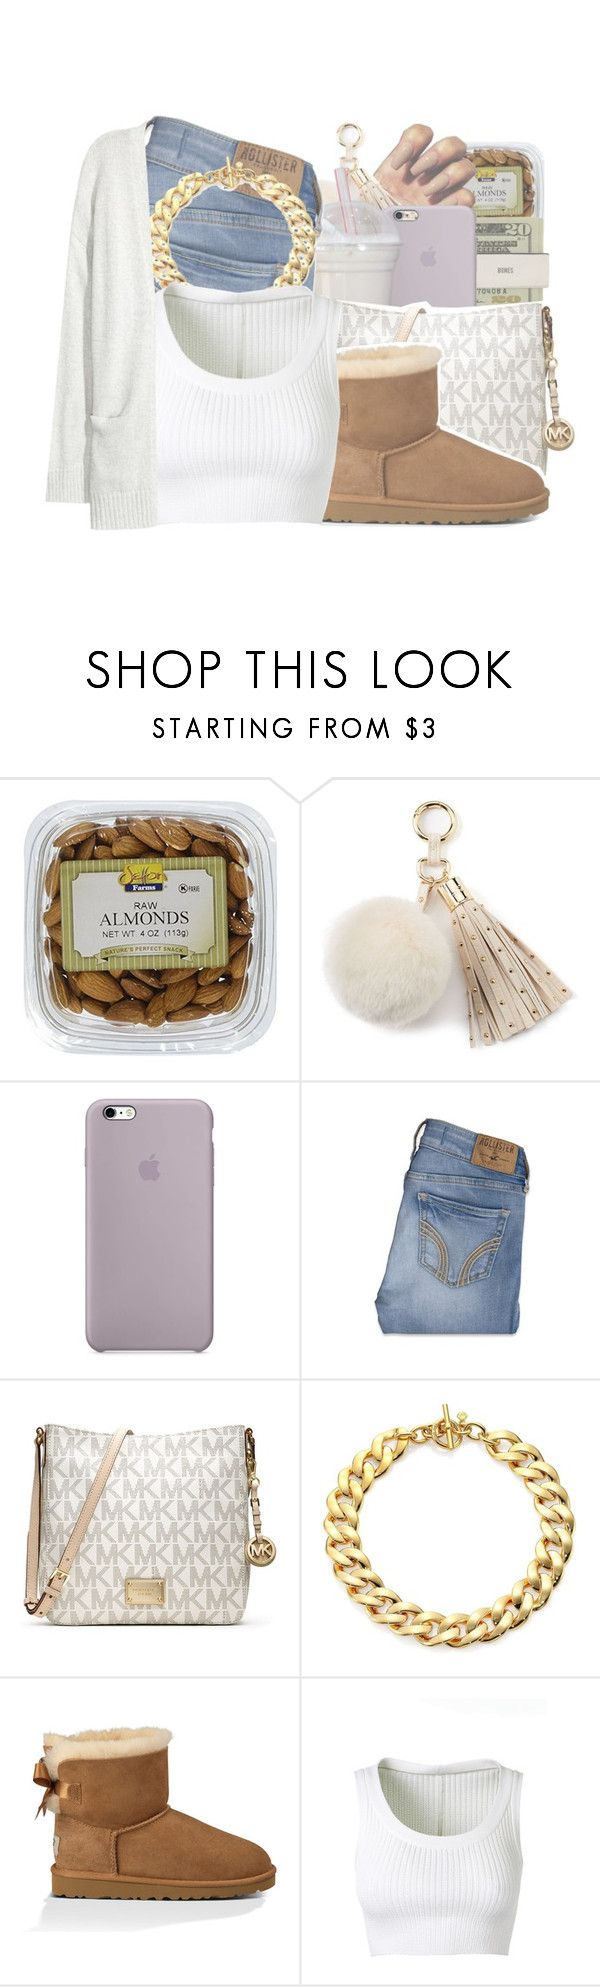 """""""He better act right around me ."""" by royaltyvoka ❤ liked on Polyvore featuring Juicy Couture, Jack Spade, Hollister Co., MICHAEL Michael Kors, Michael Kors, UGG Australia, Alaïa and Kofta"""